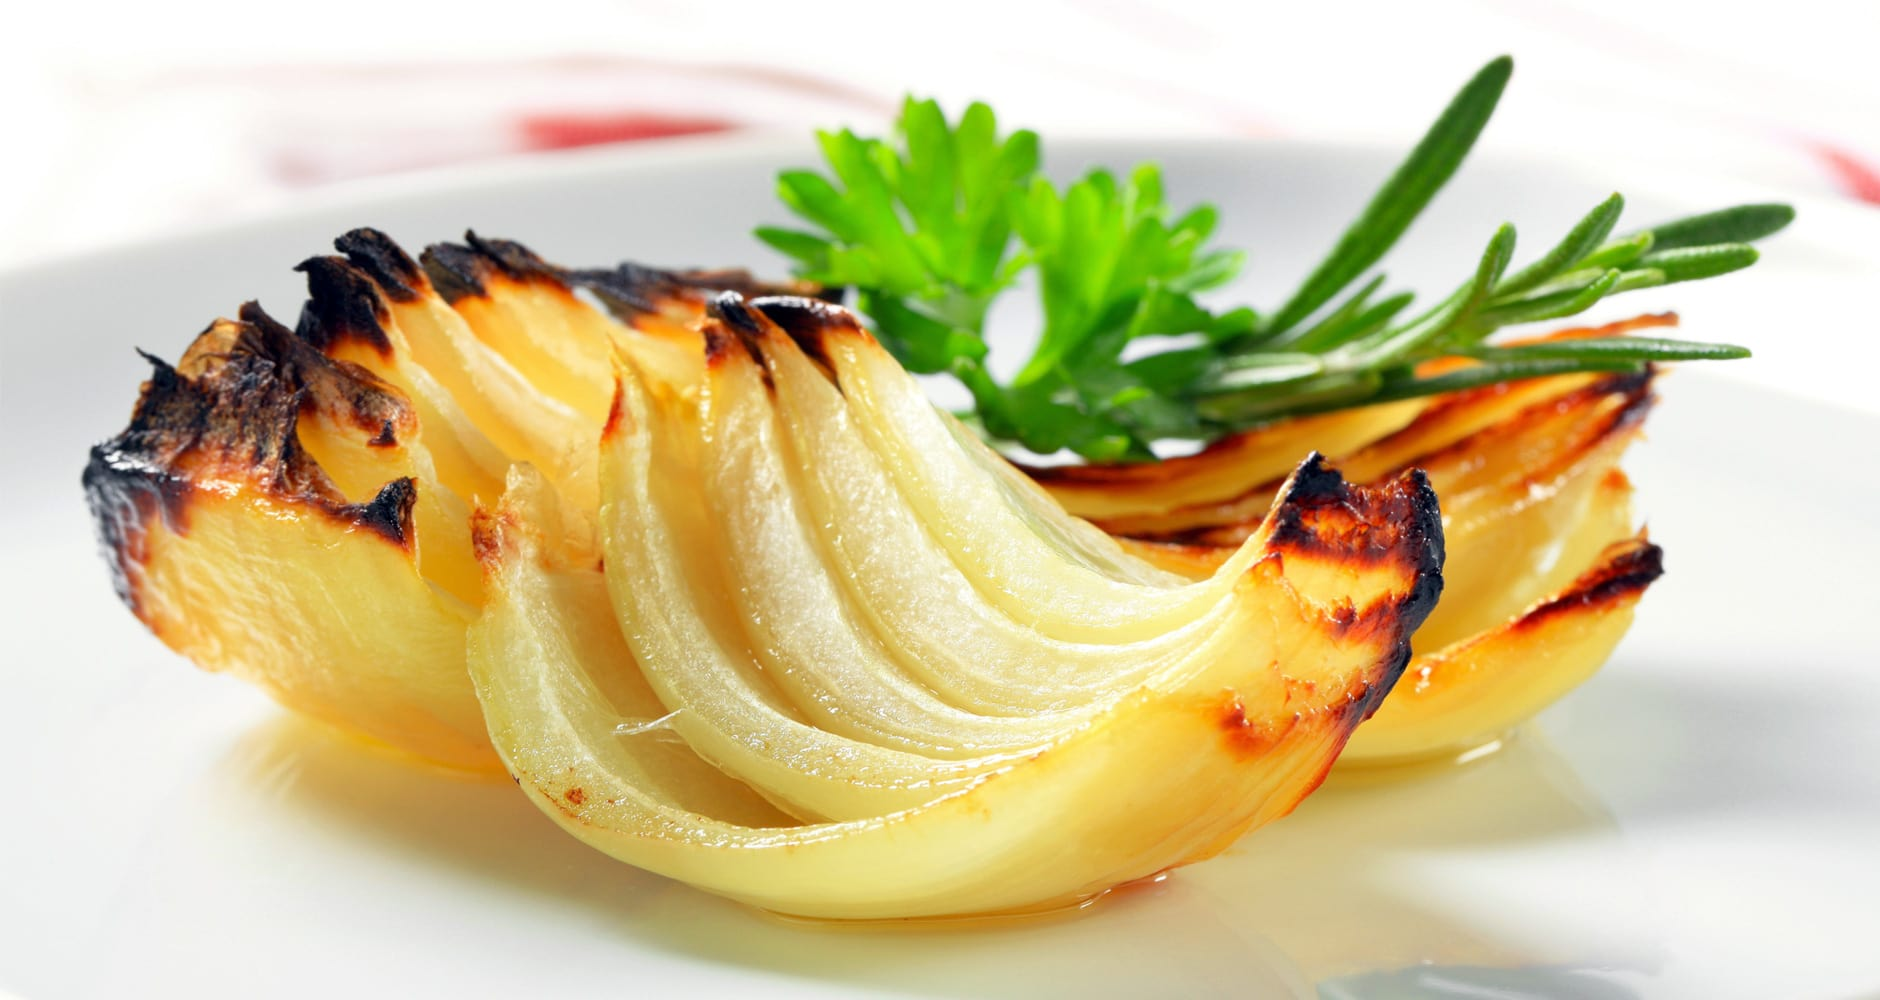 Grilled onions on a plate with herbs.